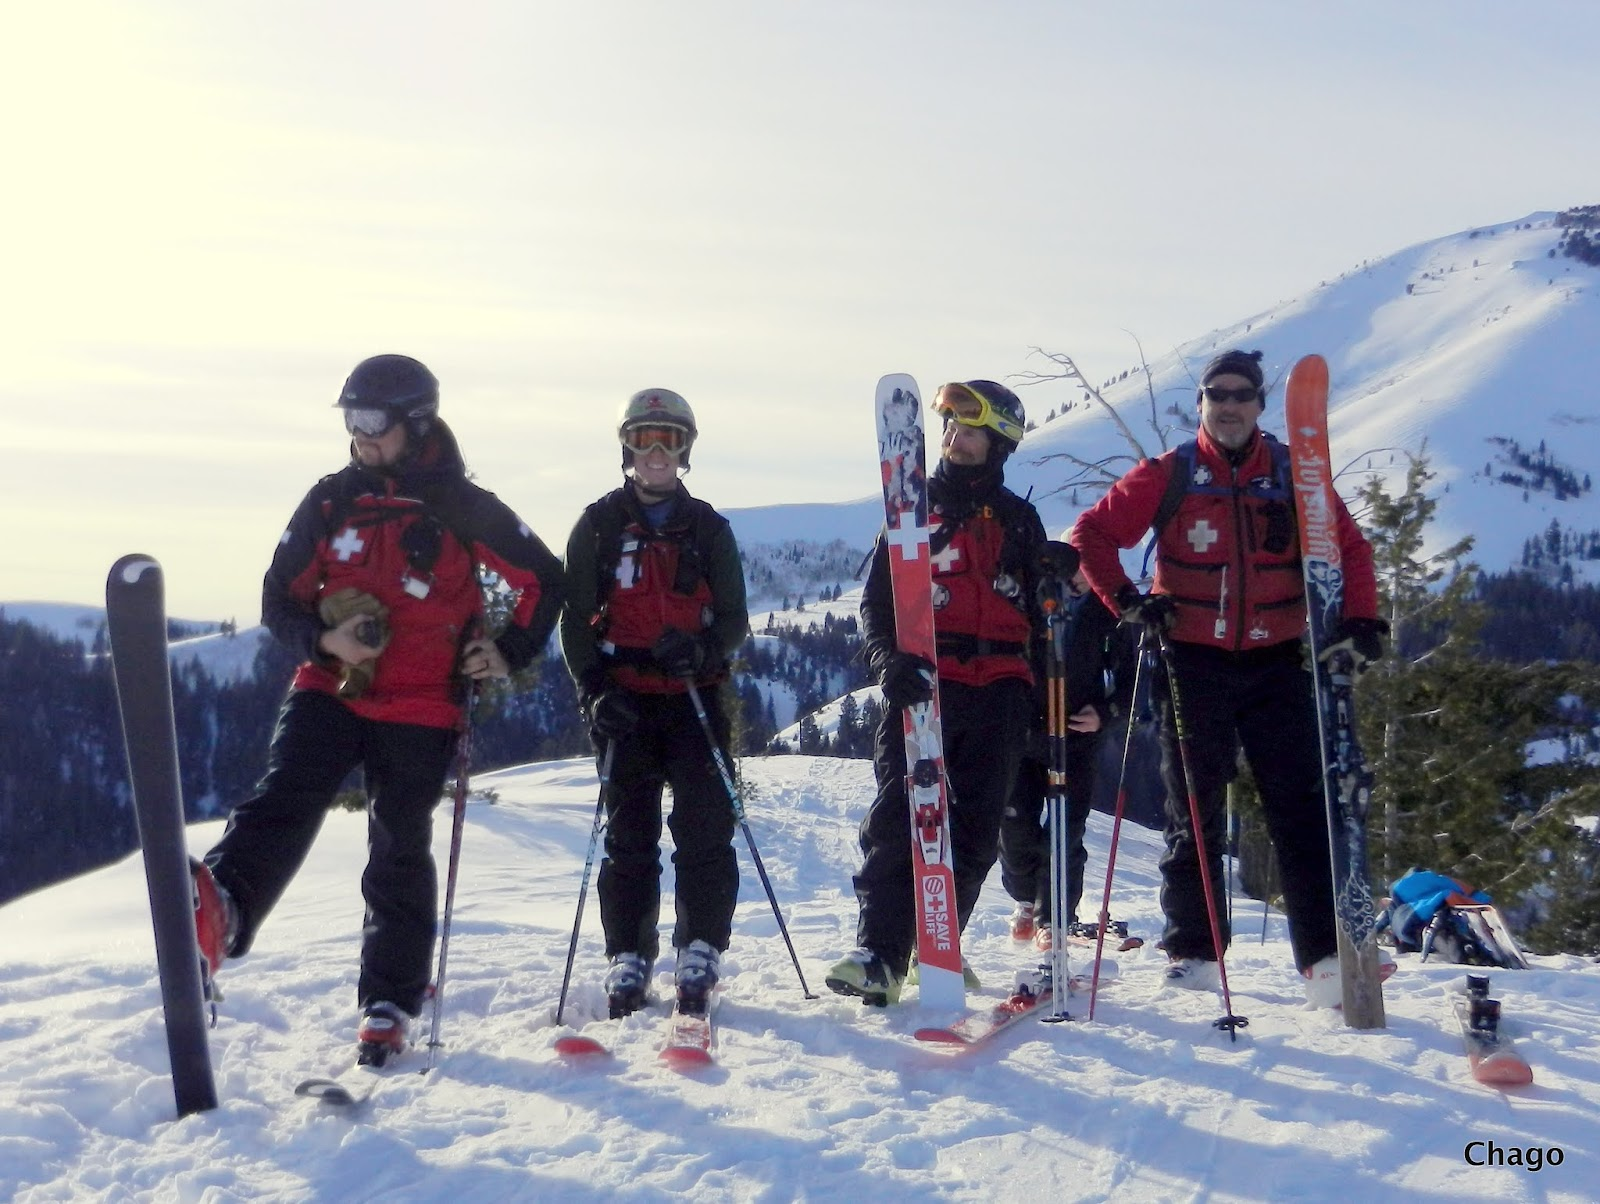 mores creek summit backcountry skiing: peak 1 - soldier mountains